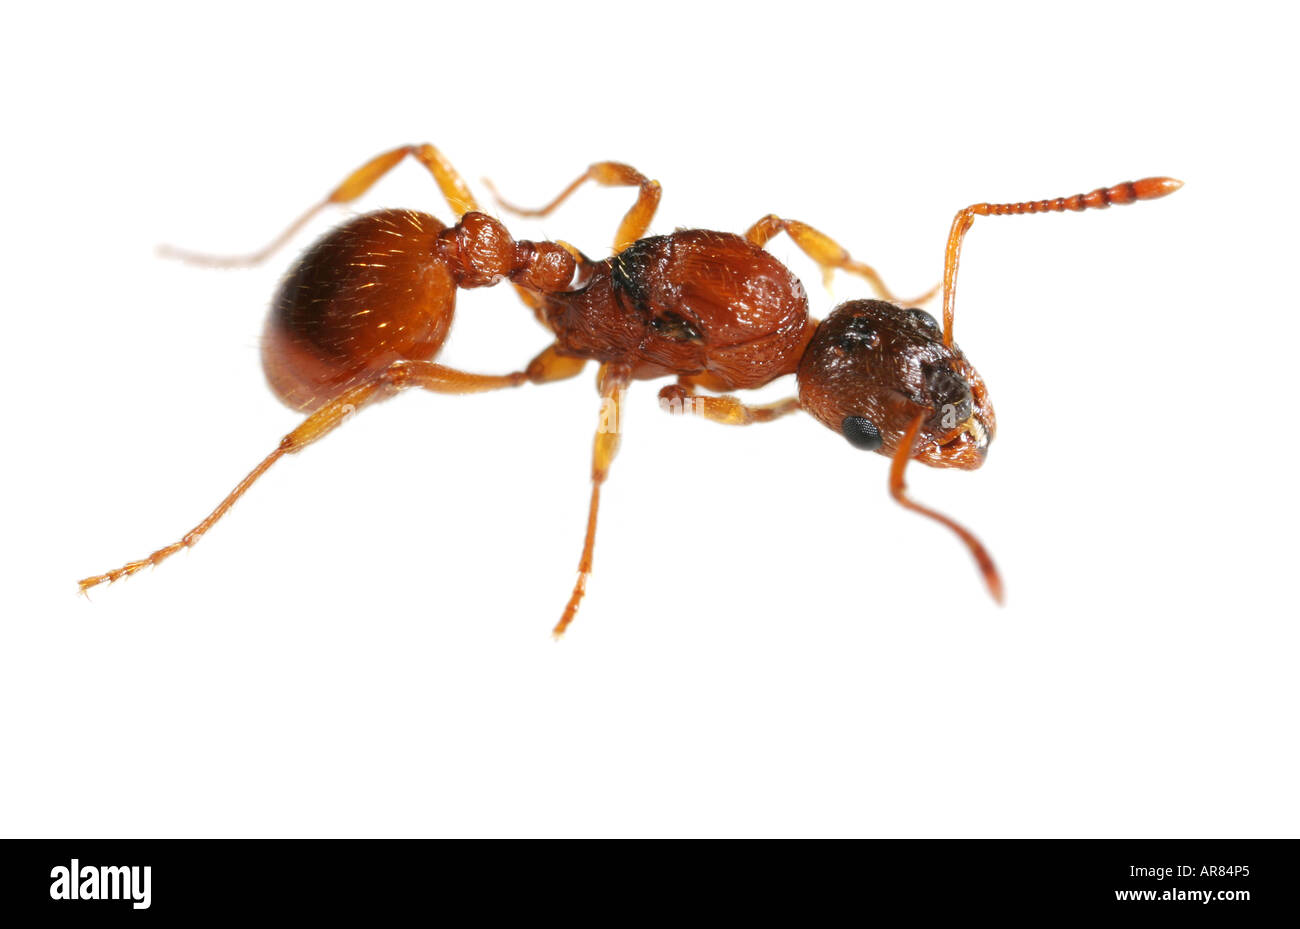 Close-up of a small red ant on white background Stock Photo